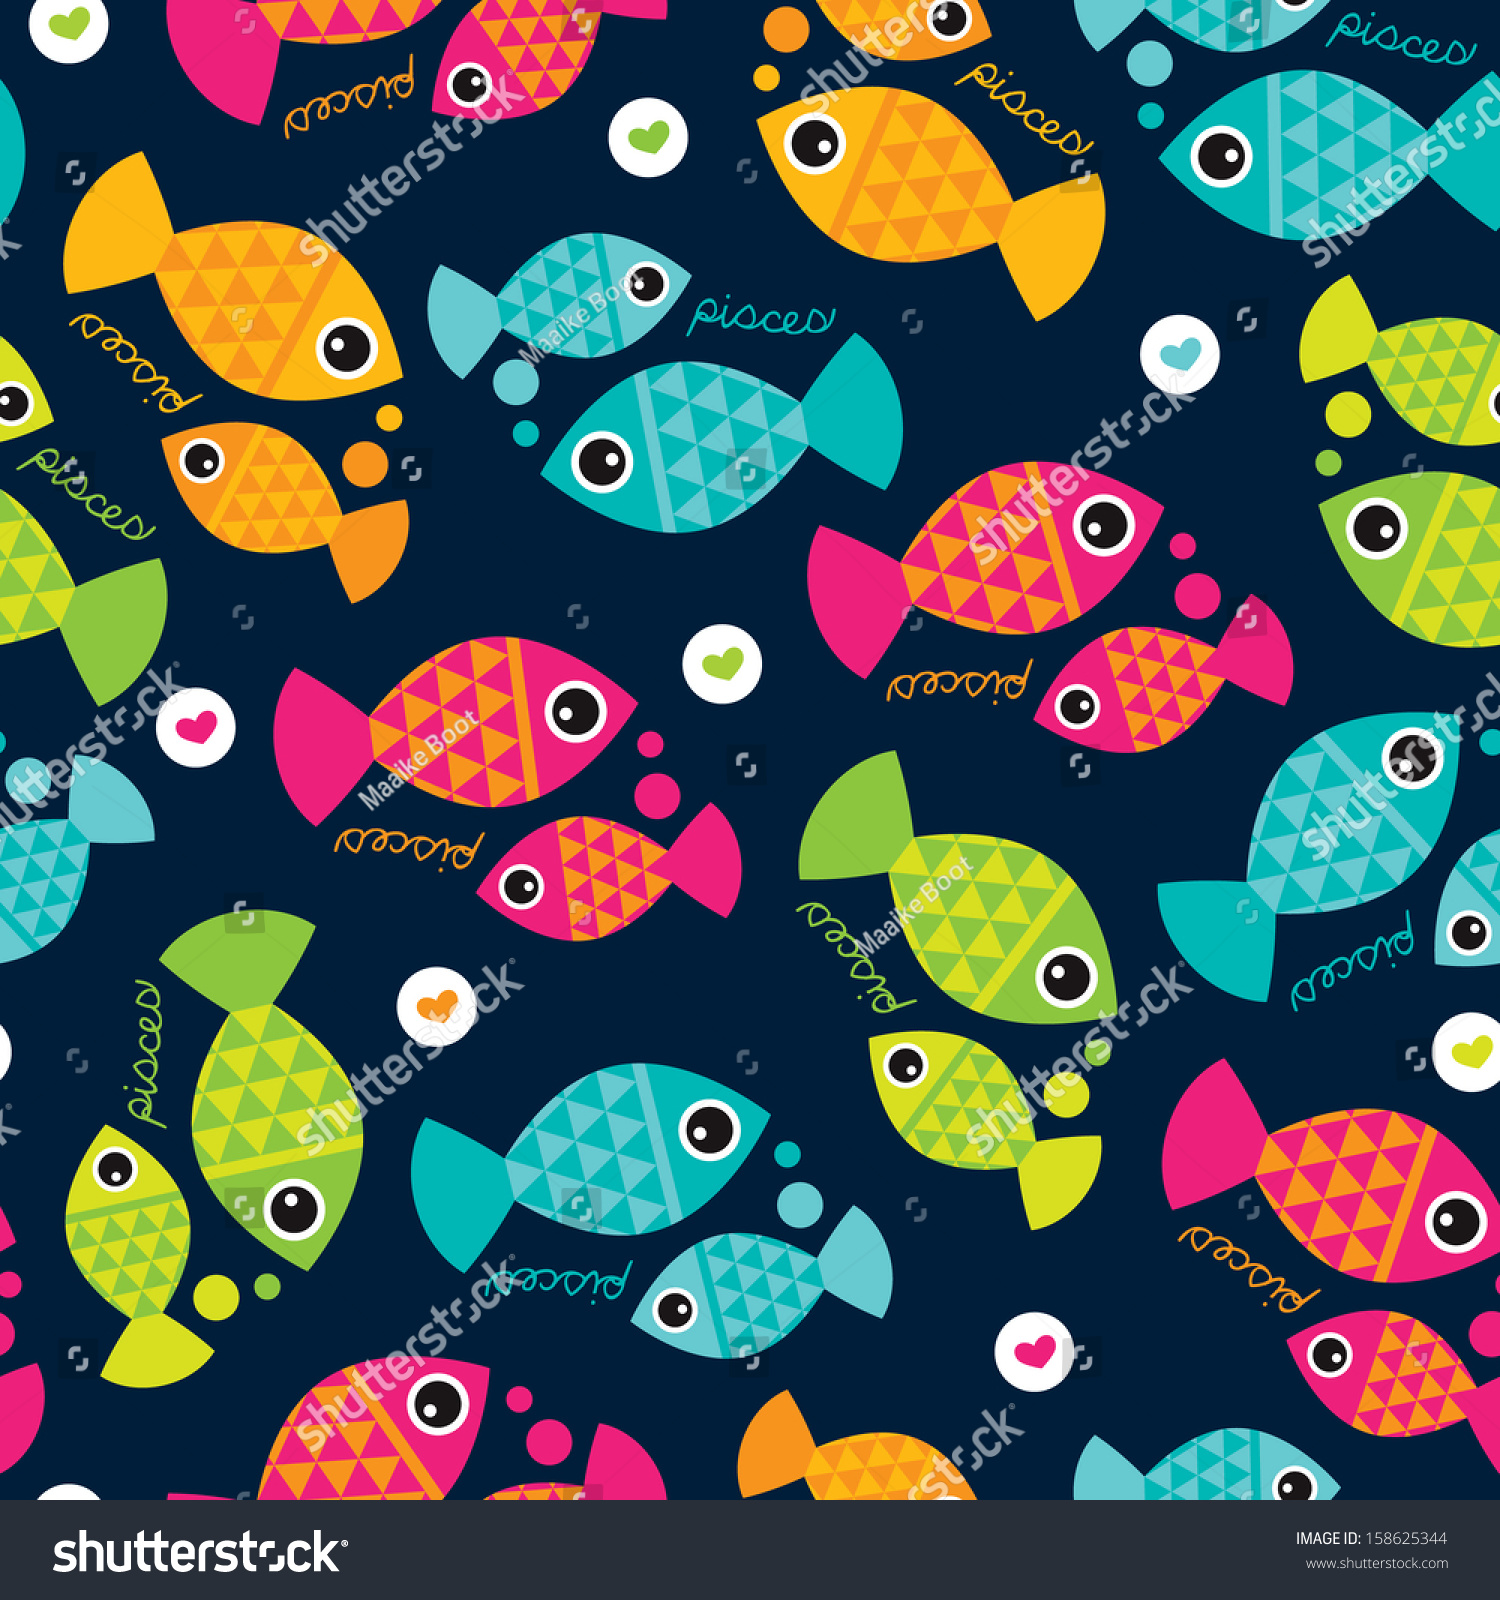 Image Gallery Of Cute Pisces Wallpaper